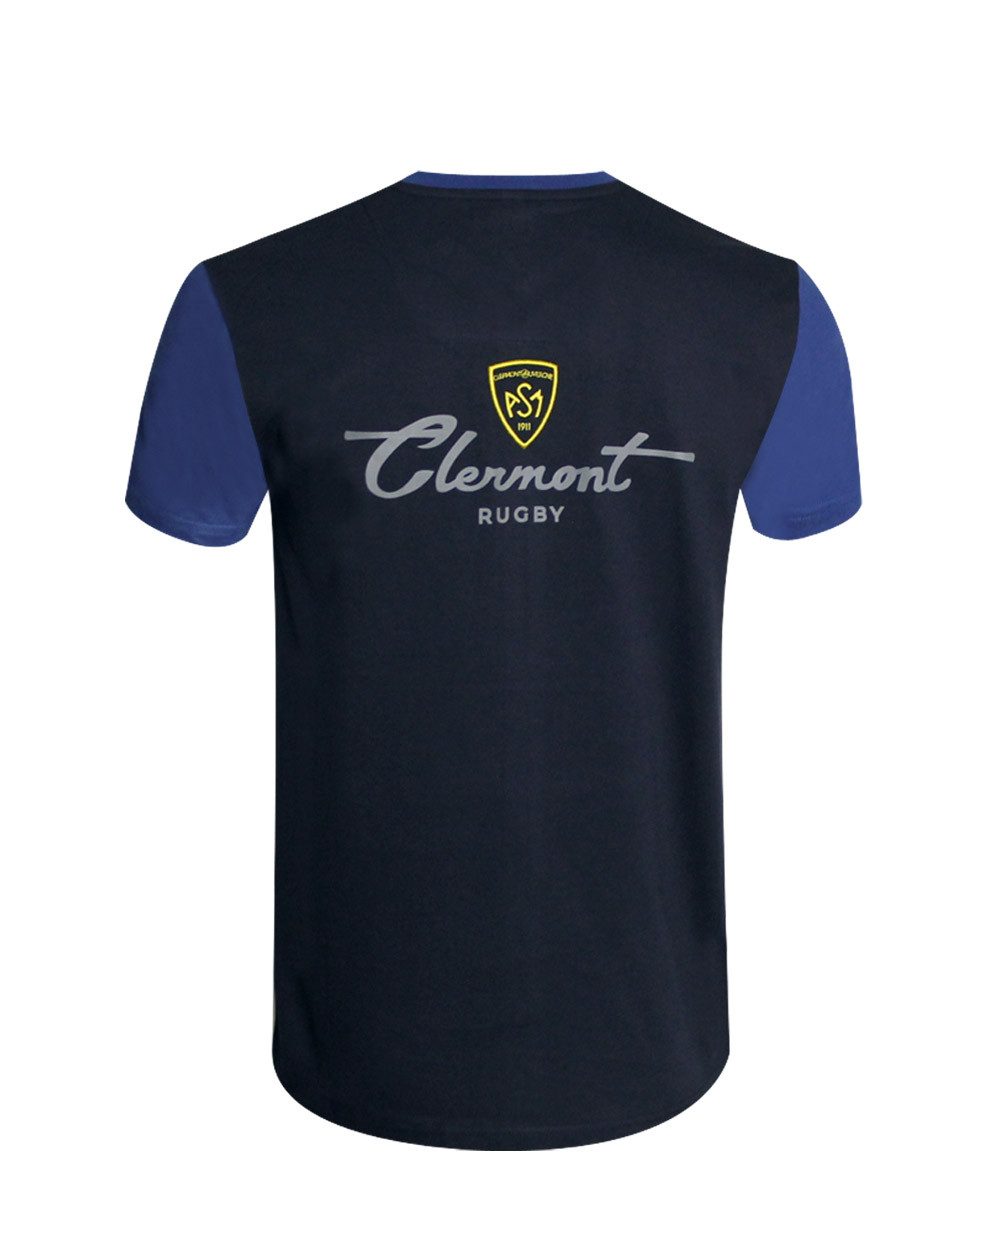 Tee-shirt Clergriff ASM manches courtes marine/roi homme